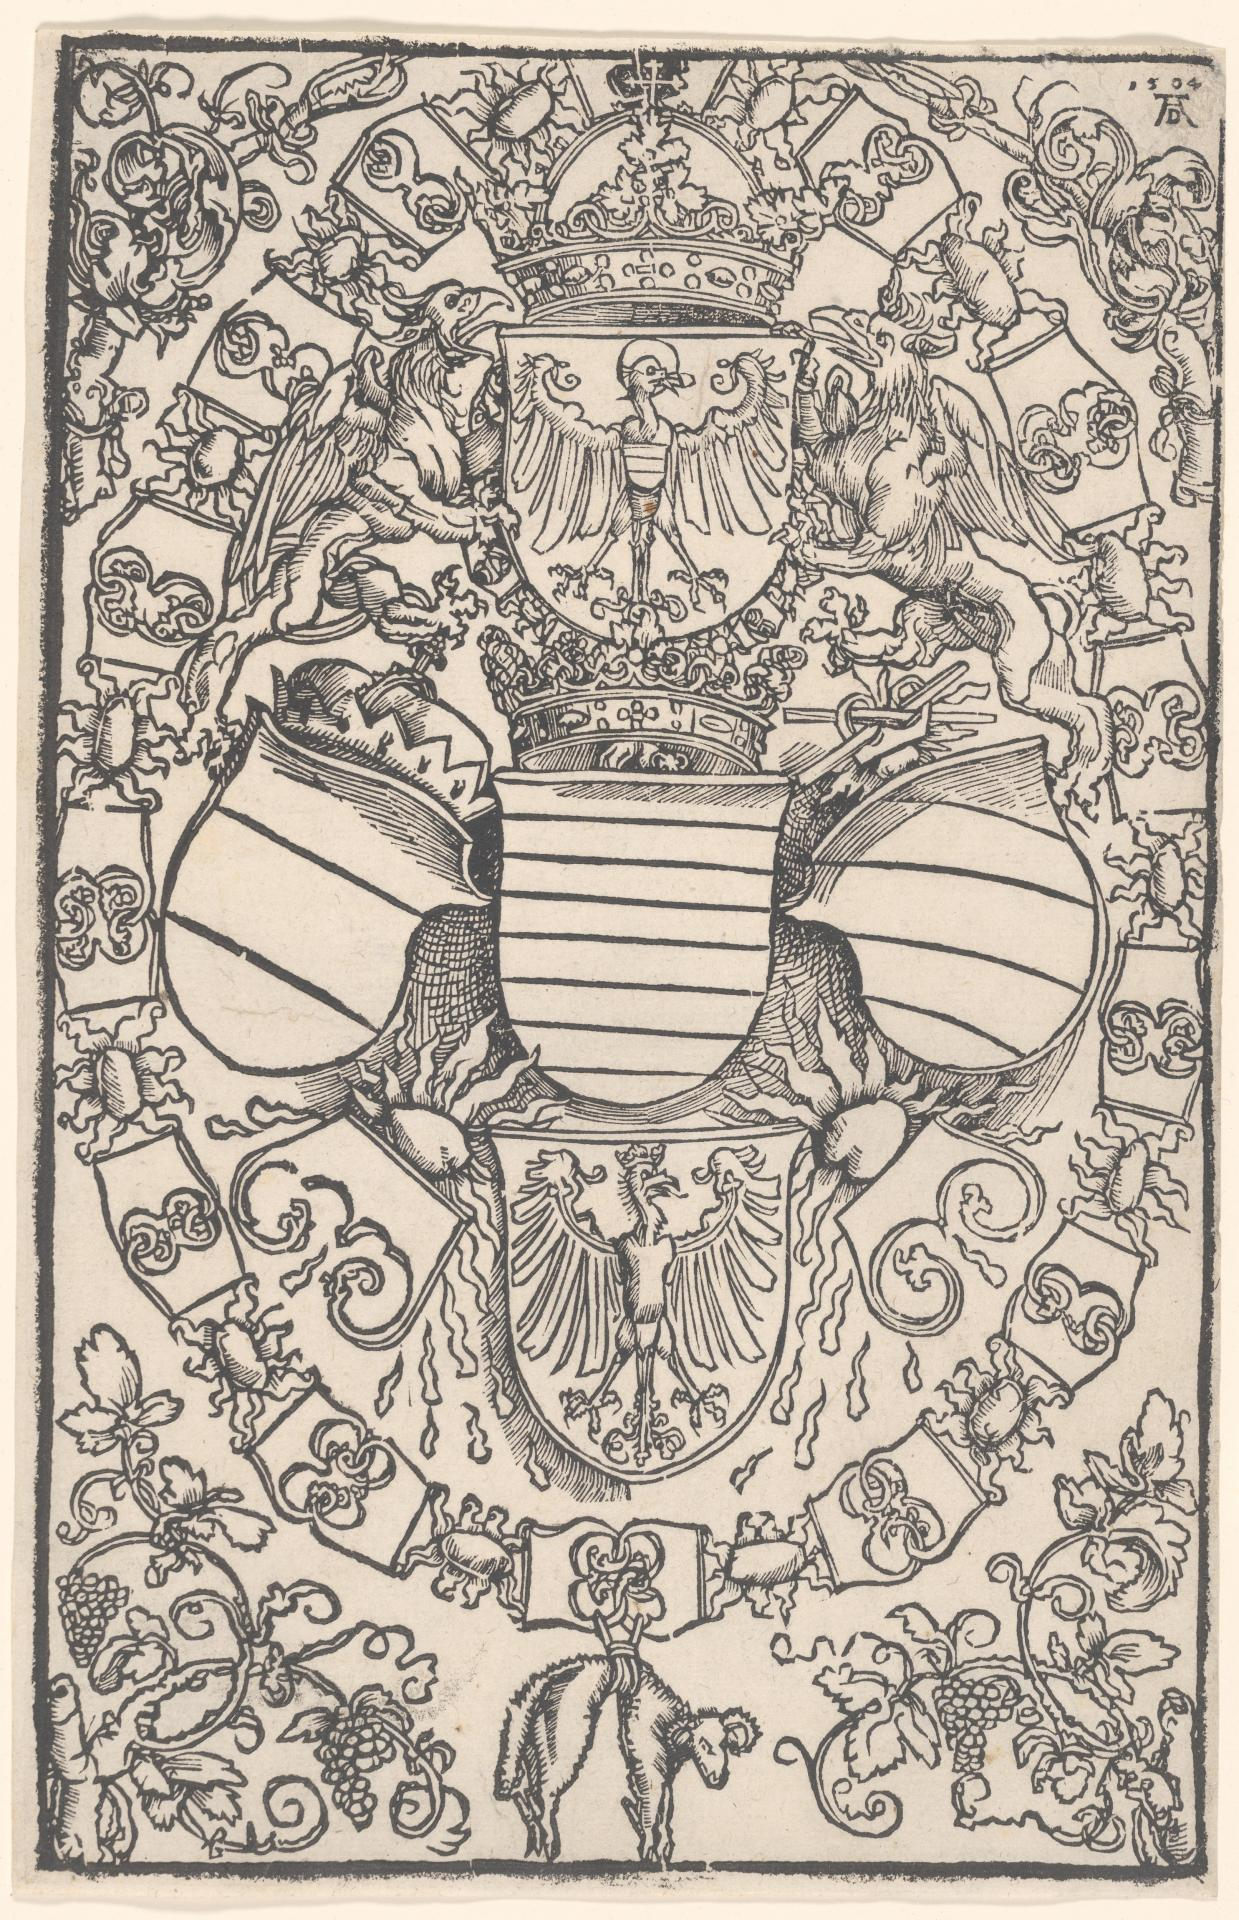 Coat of Arms of Maximilian I as King of the Romans